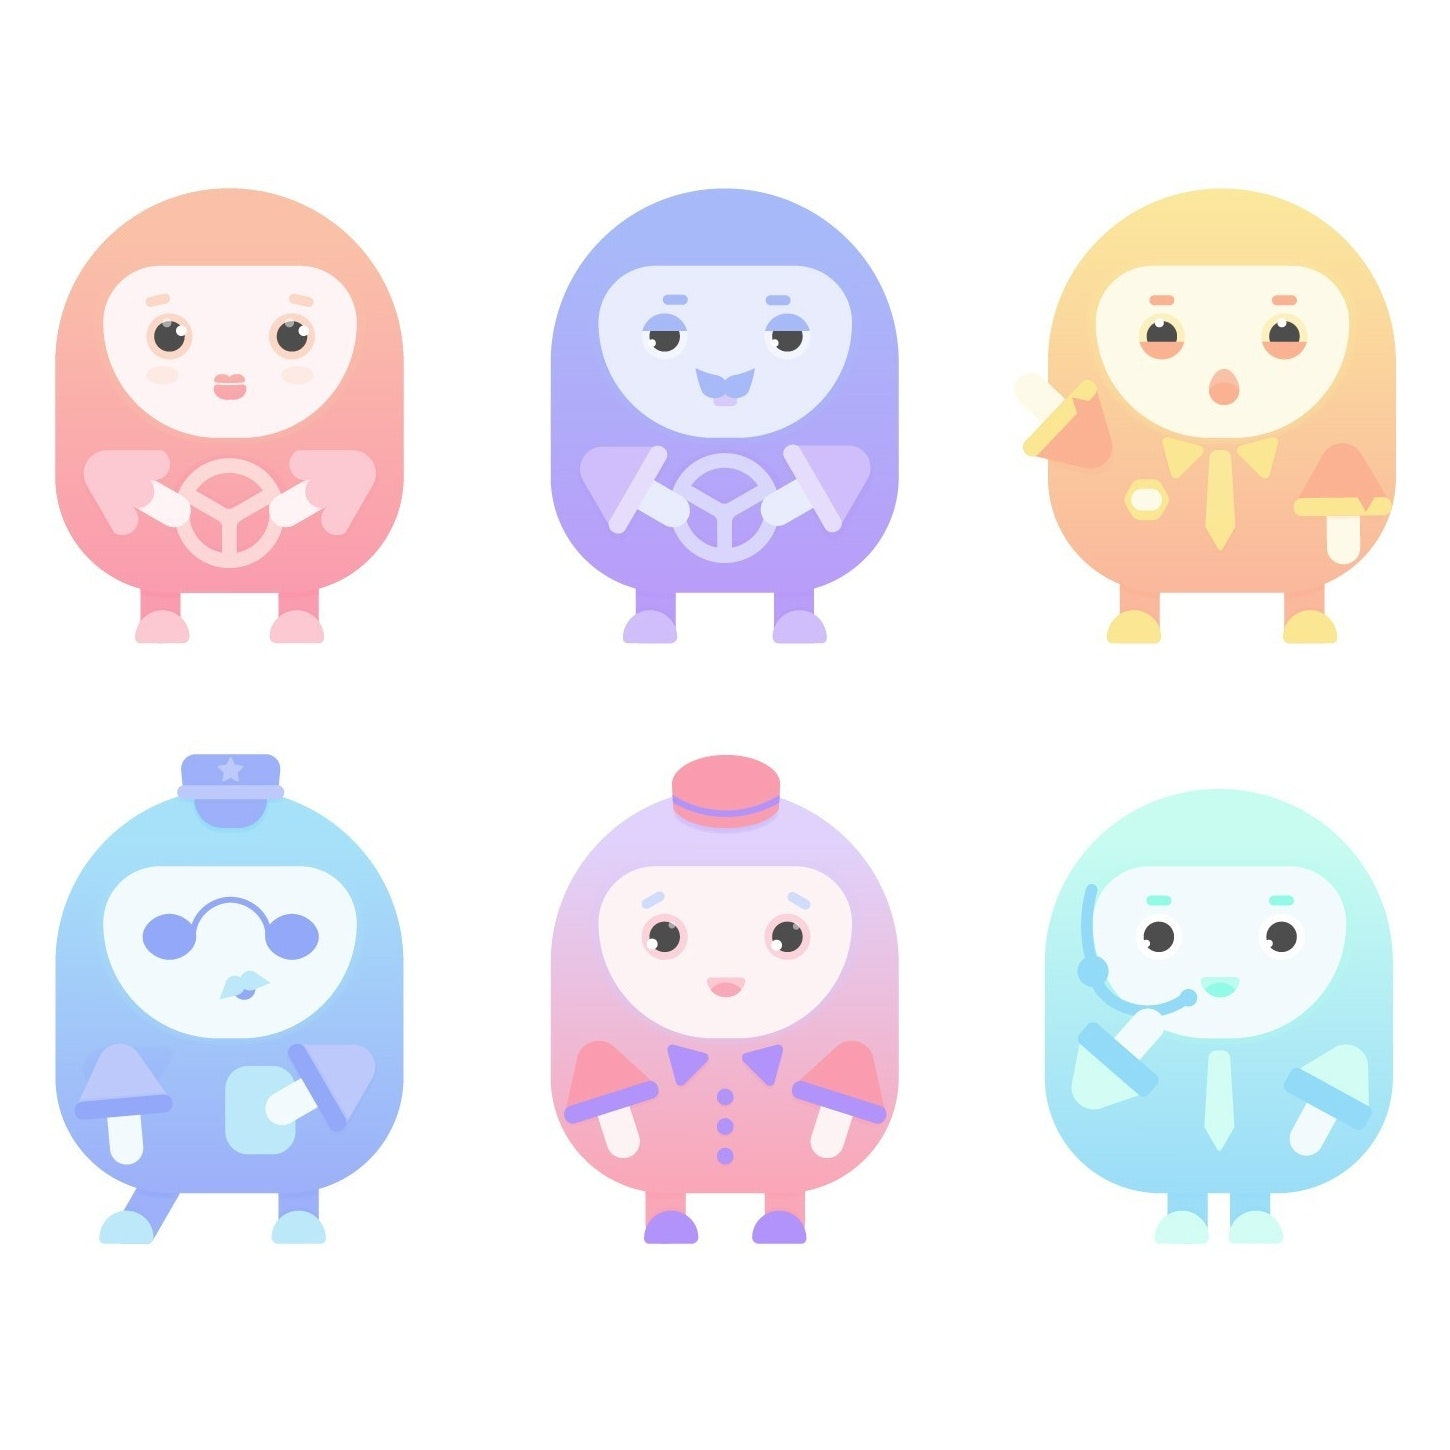 Cute, colorful character designs for a parking app